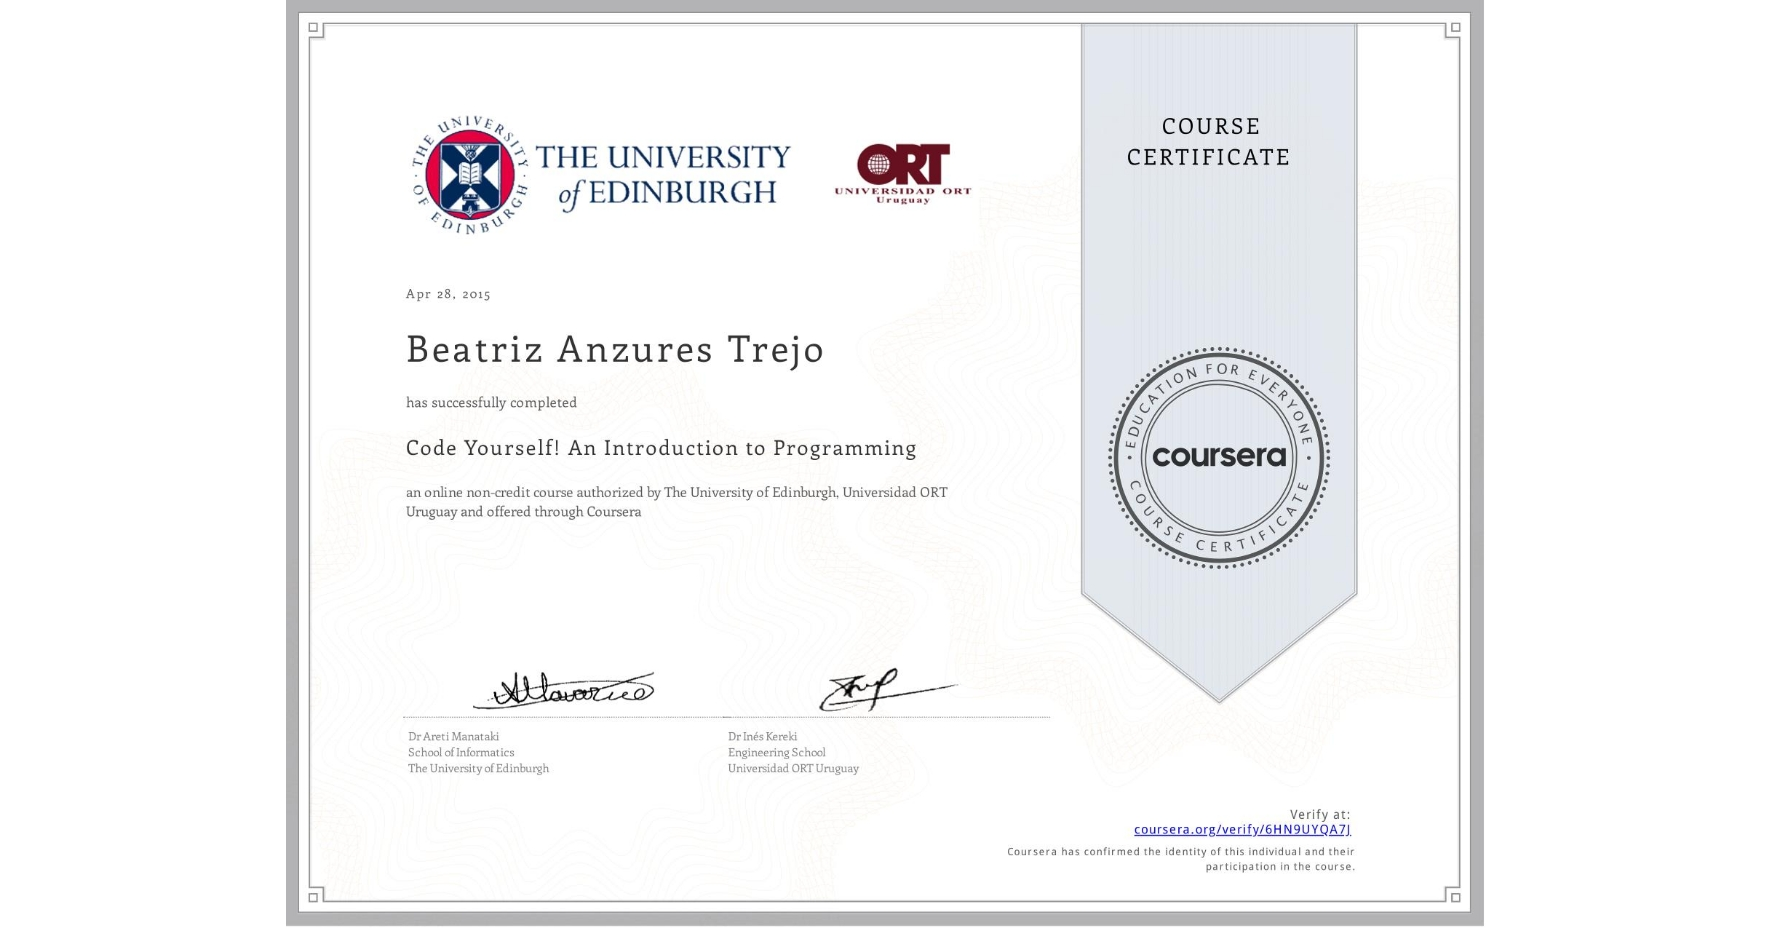 View certificate for Beatriz Anzures Trejo, Code Yourself! An Introduction to Programming, an online non-credit course authorized by The University of Edinburgh & Universidad ORT Uruguay and offered through Coursera